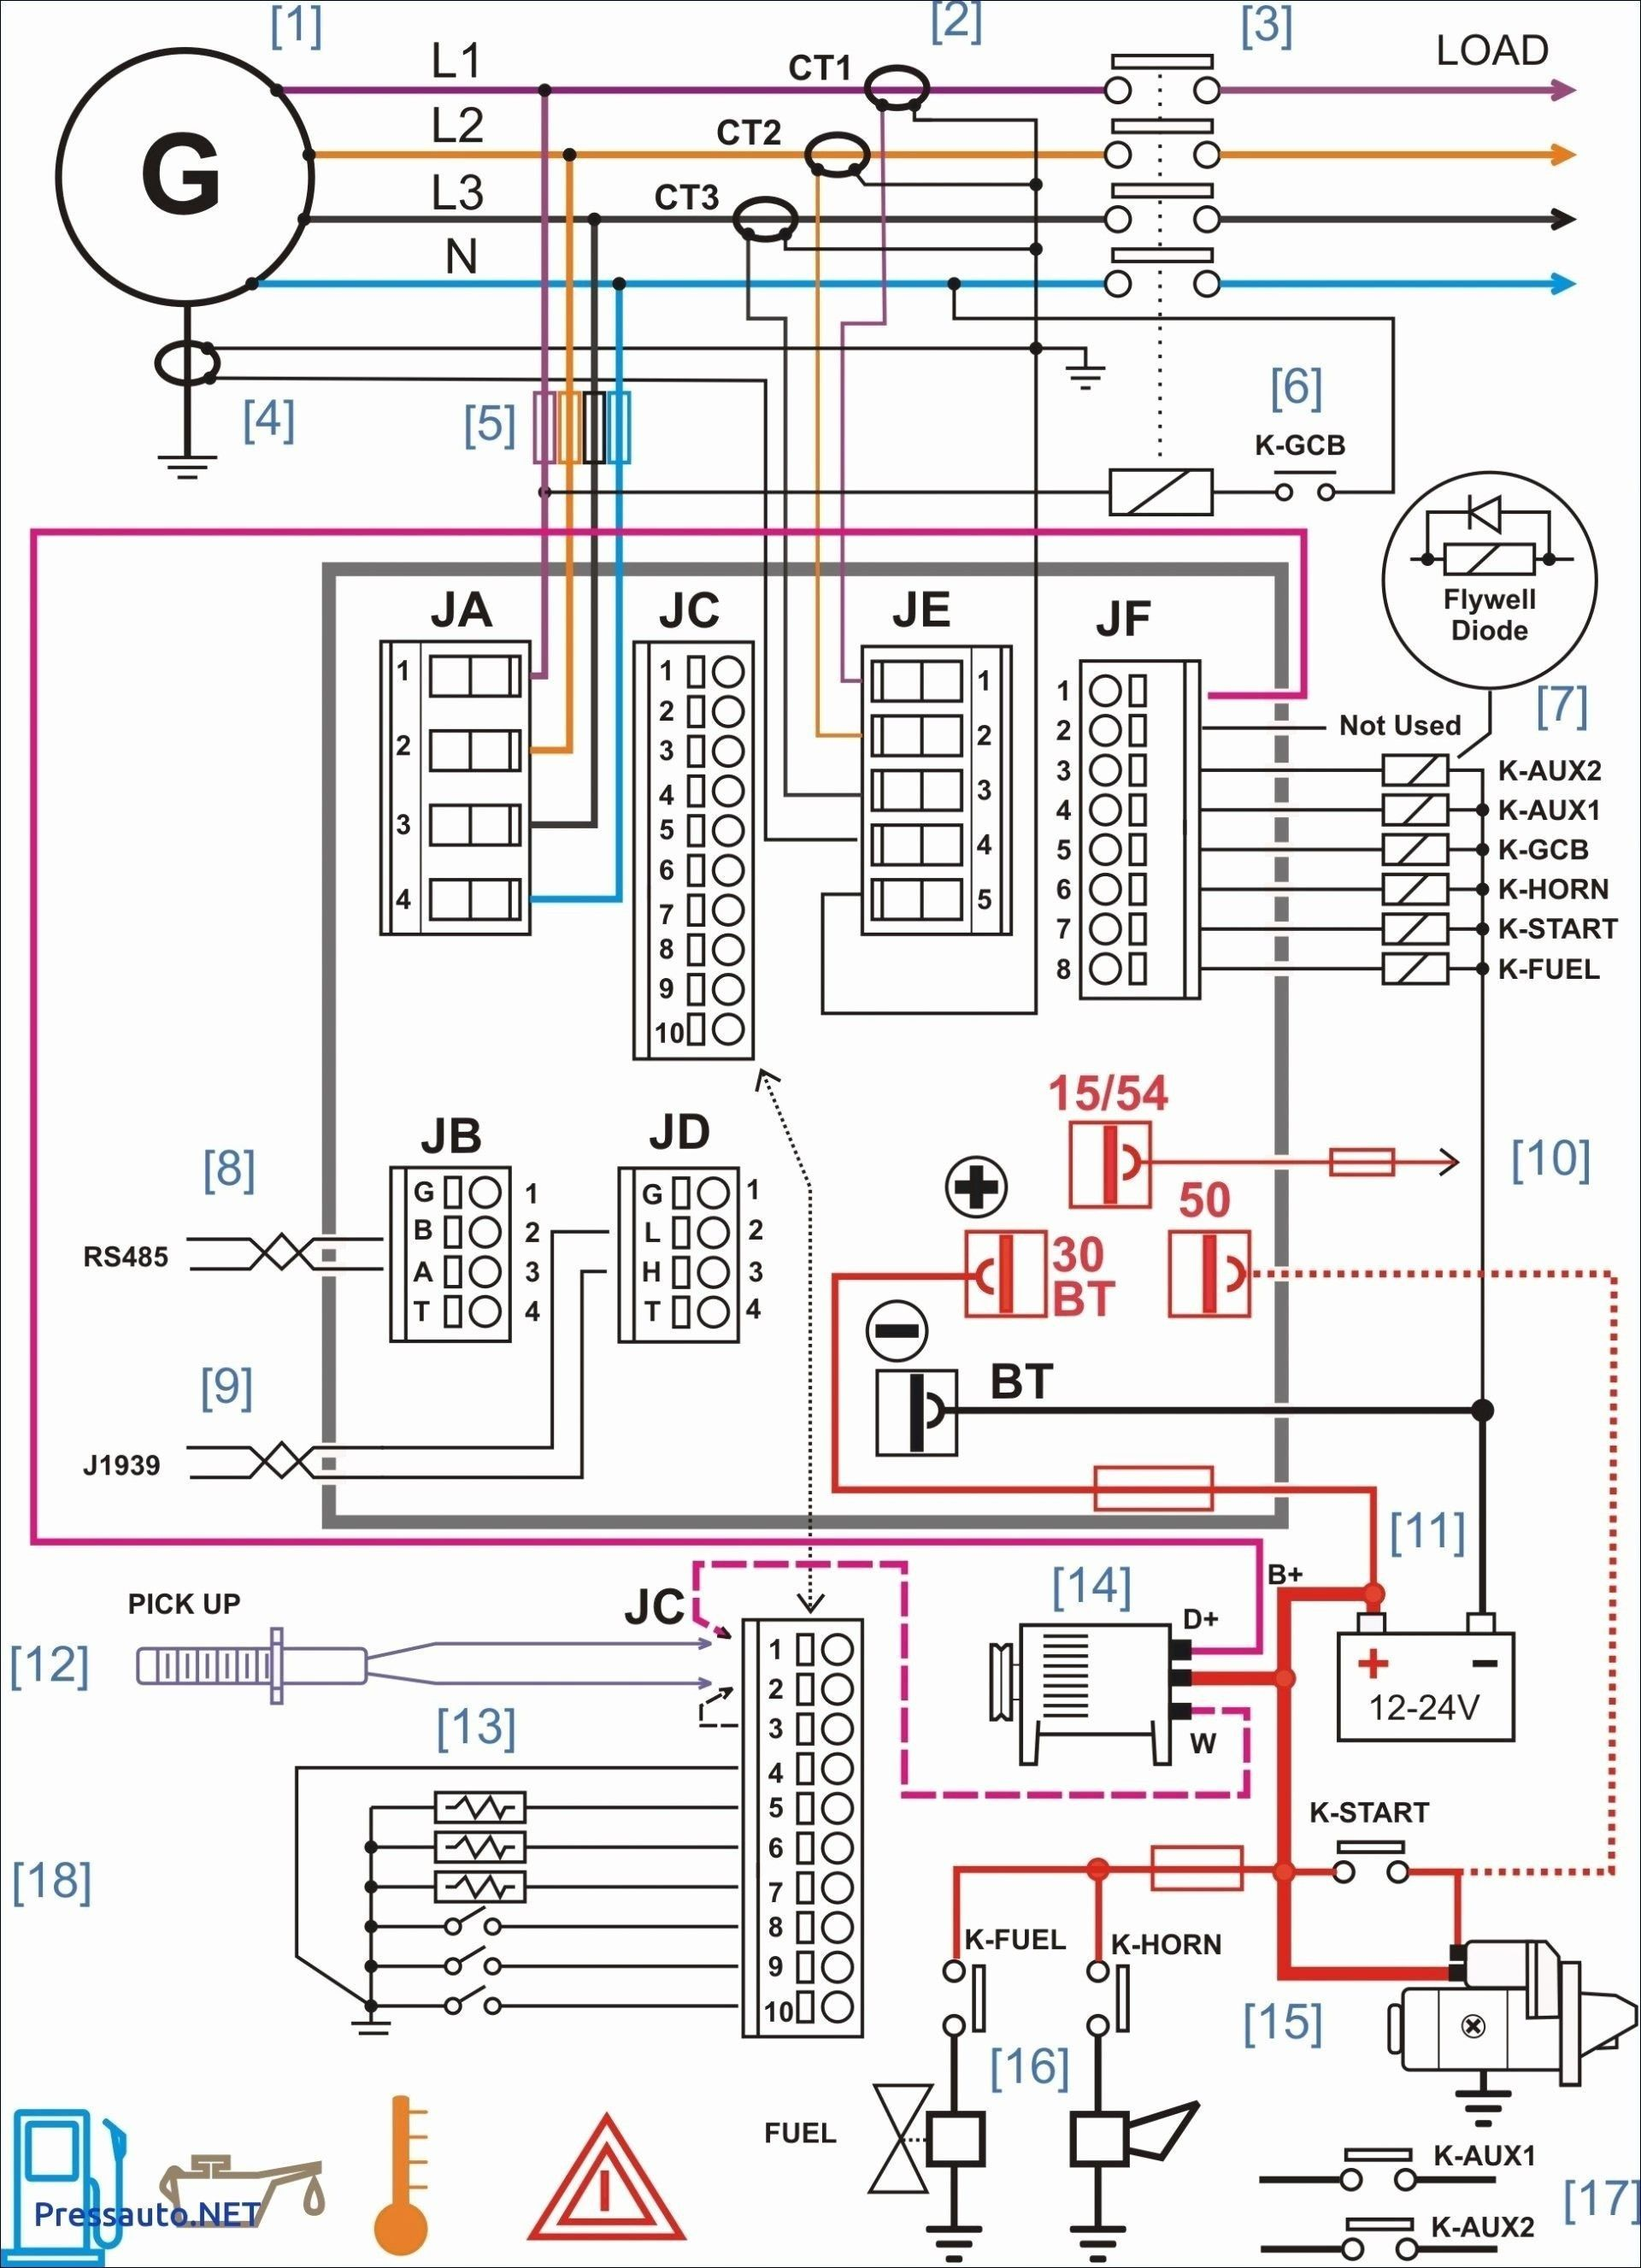 Unique Home Electric Wiring Diagrams Diagram Wiringdiagram Diagramming Diagramm Vi Electrical Circuit Diagram Electrical Wiring Diagram Electrical Diagram